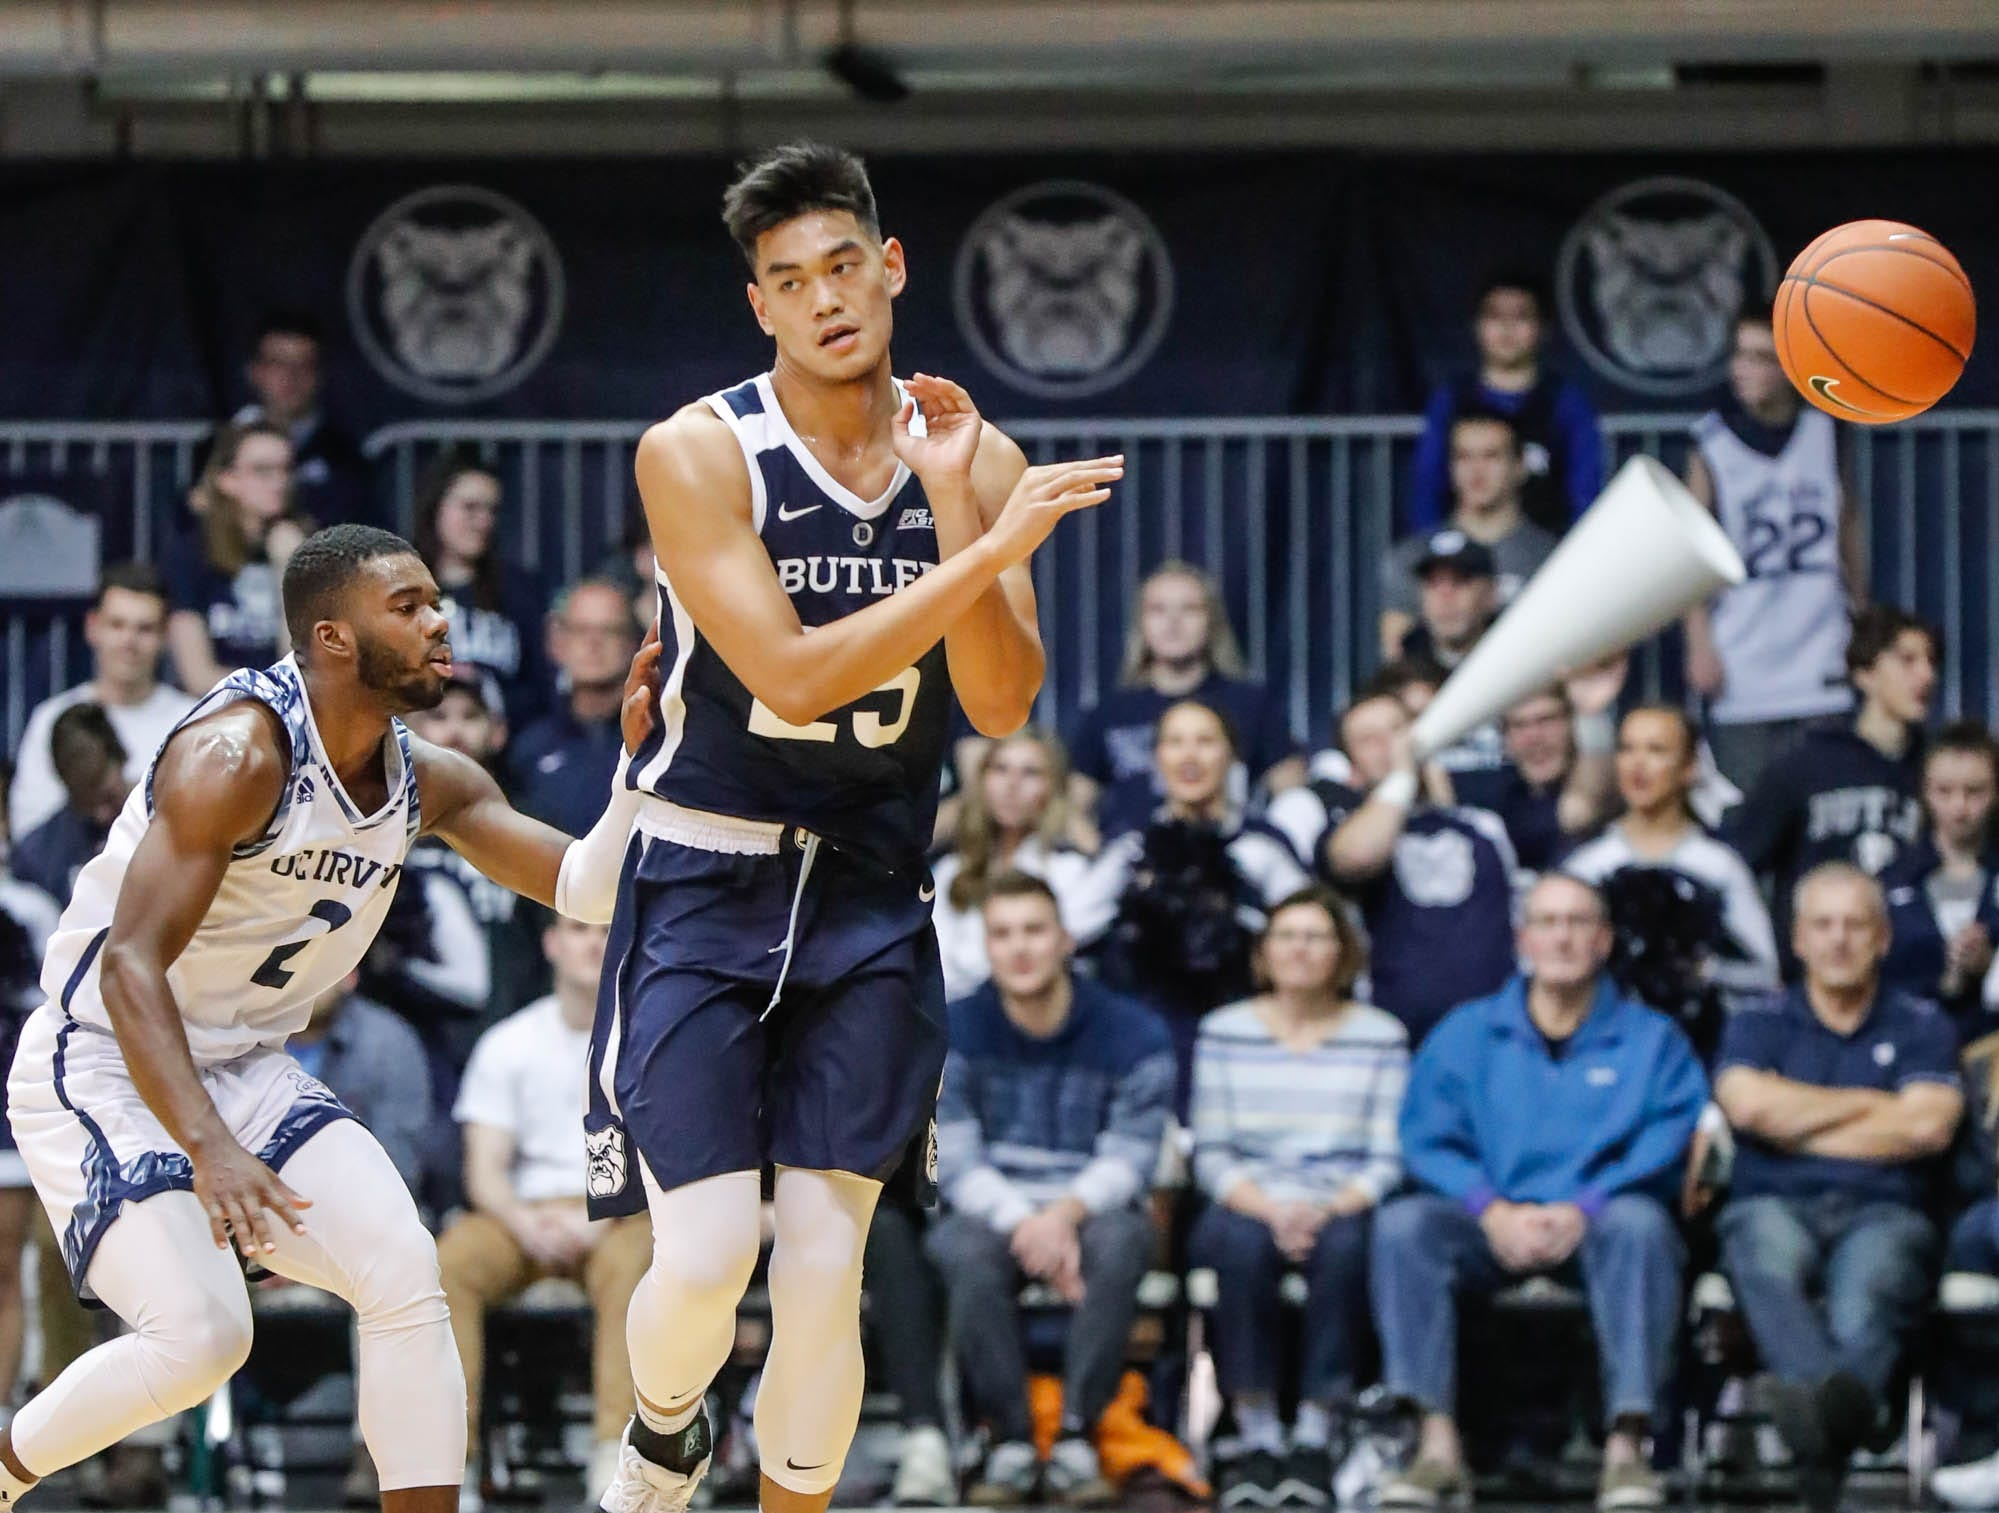 Butler University's forward Christian David (25), passes the ball during a game between Butler University and UC Irvine, at Hinkle Fieldhouse on Friday, Dec. 21, 2018. UC Irvines's guard Max Hazzard (2).